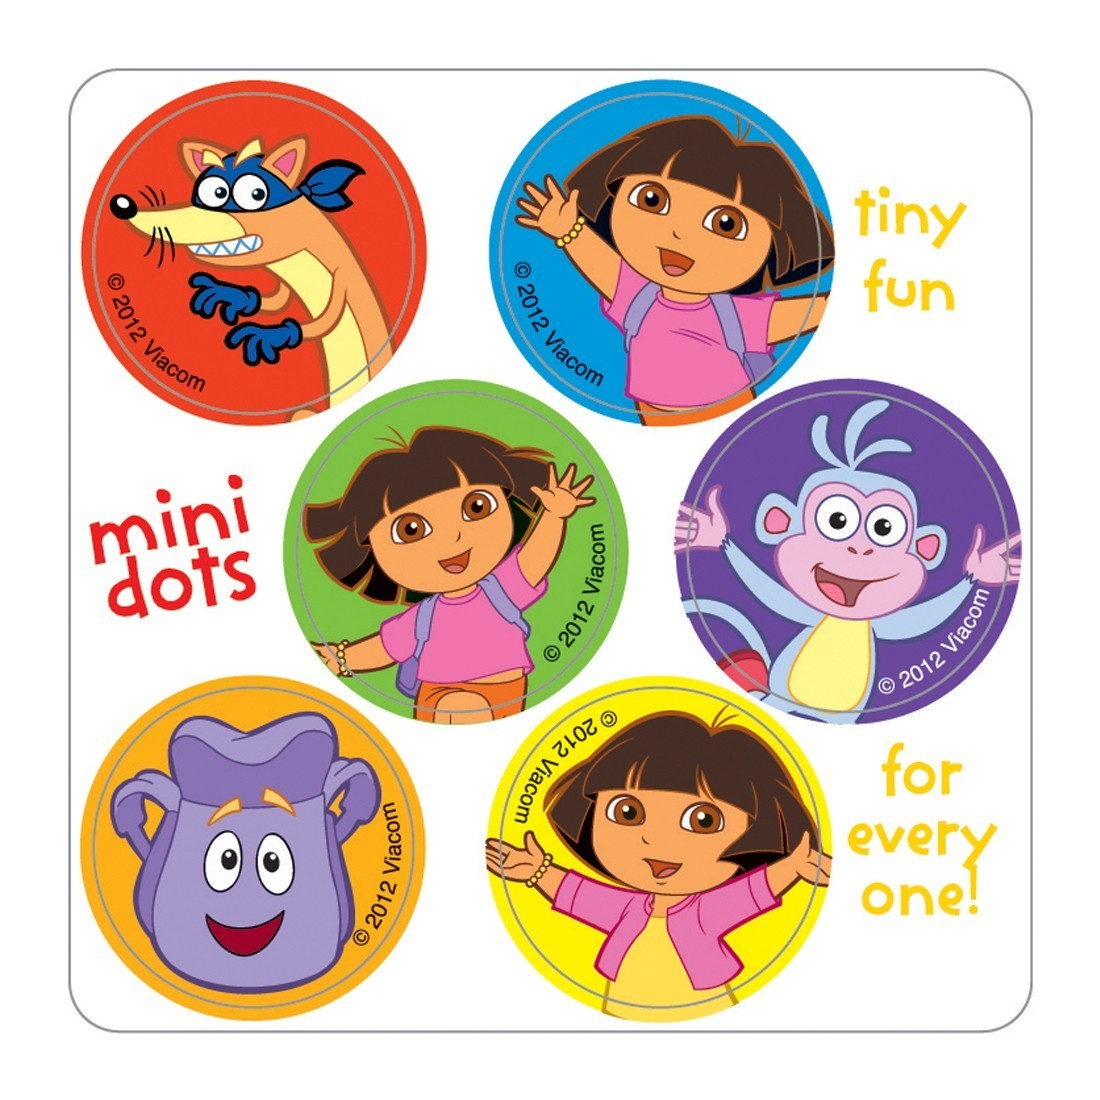 dora mini dot stickers character mini dots from smilemakers